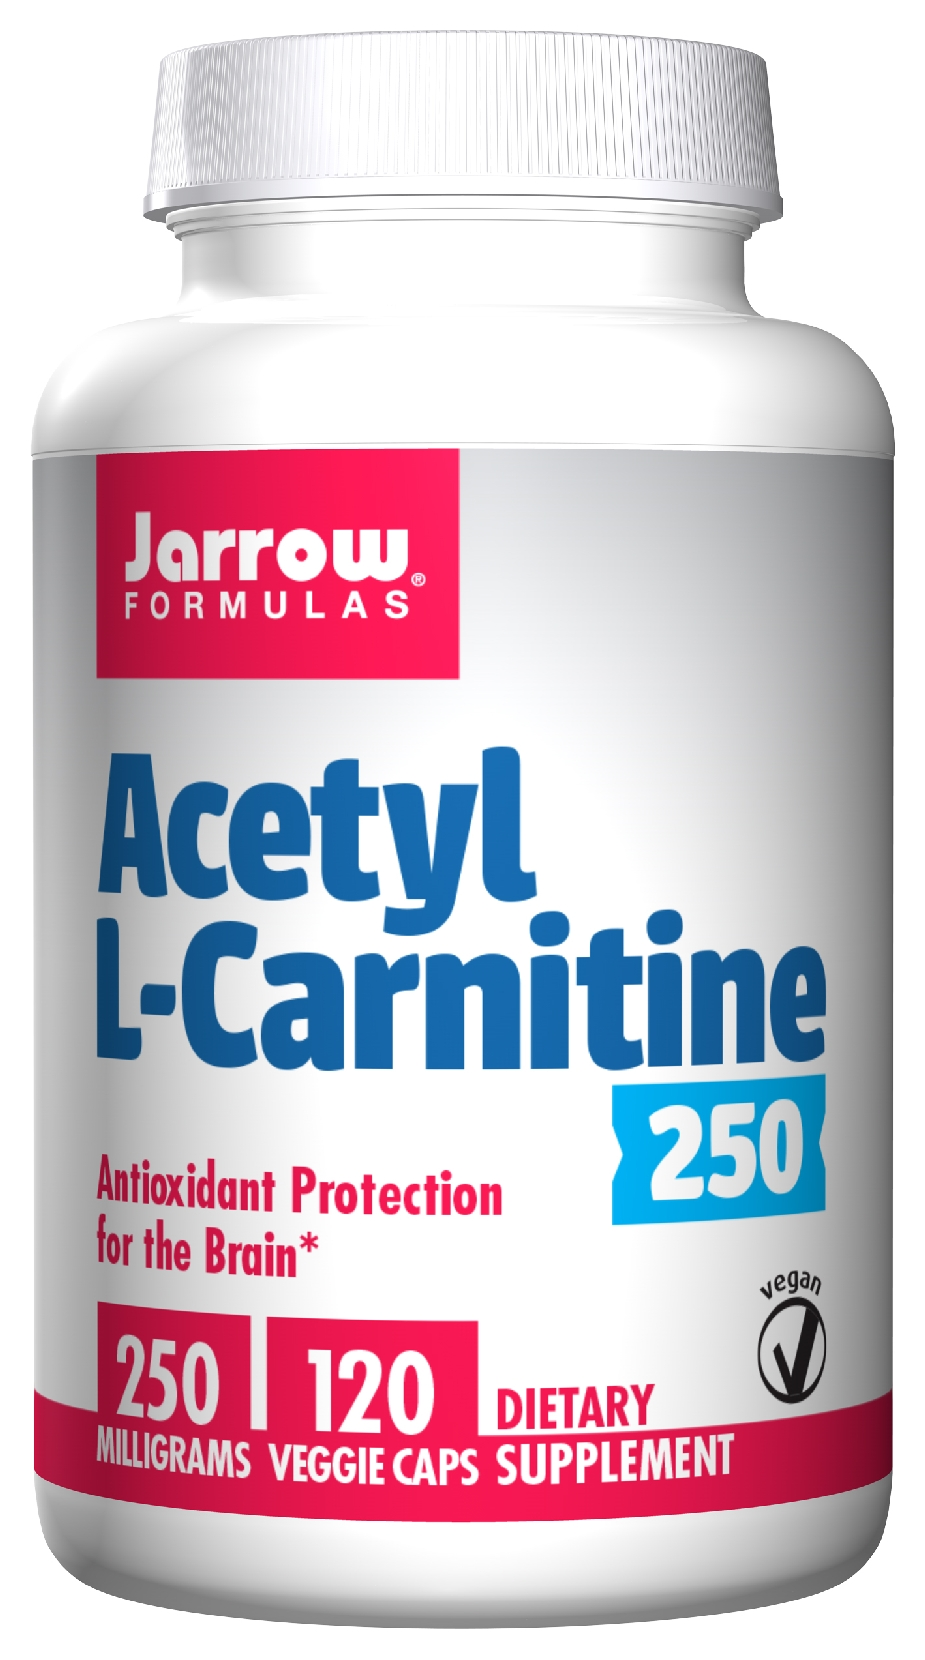 Acetyl L-Carnitine 250 mg 120 caps by Jarrow Formulas